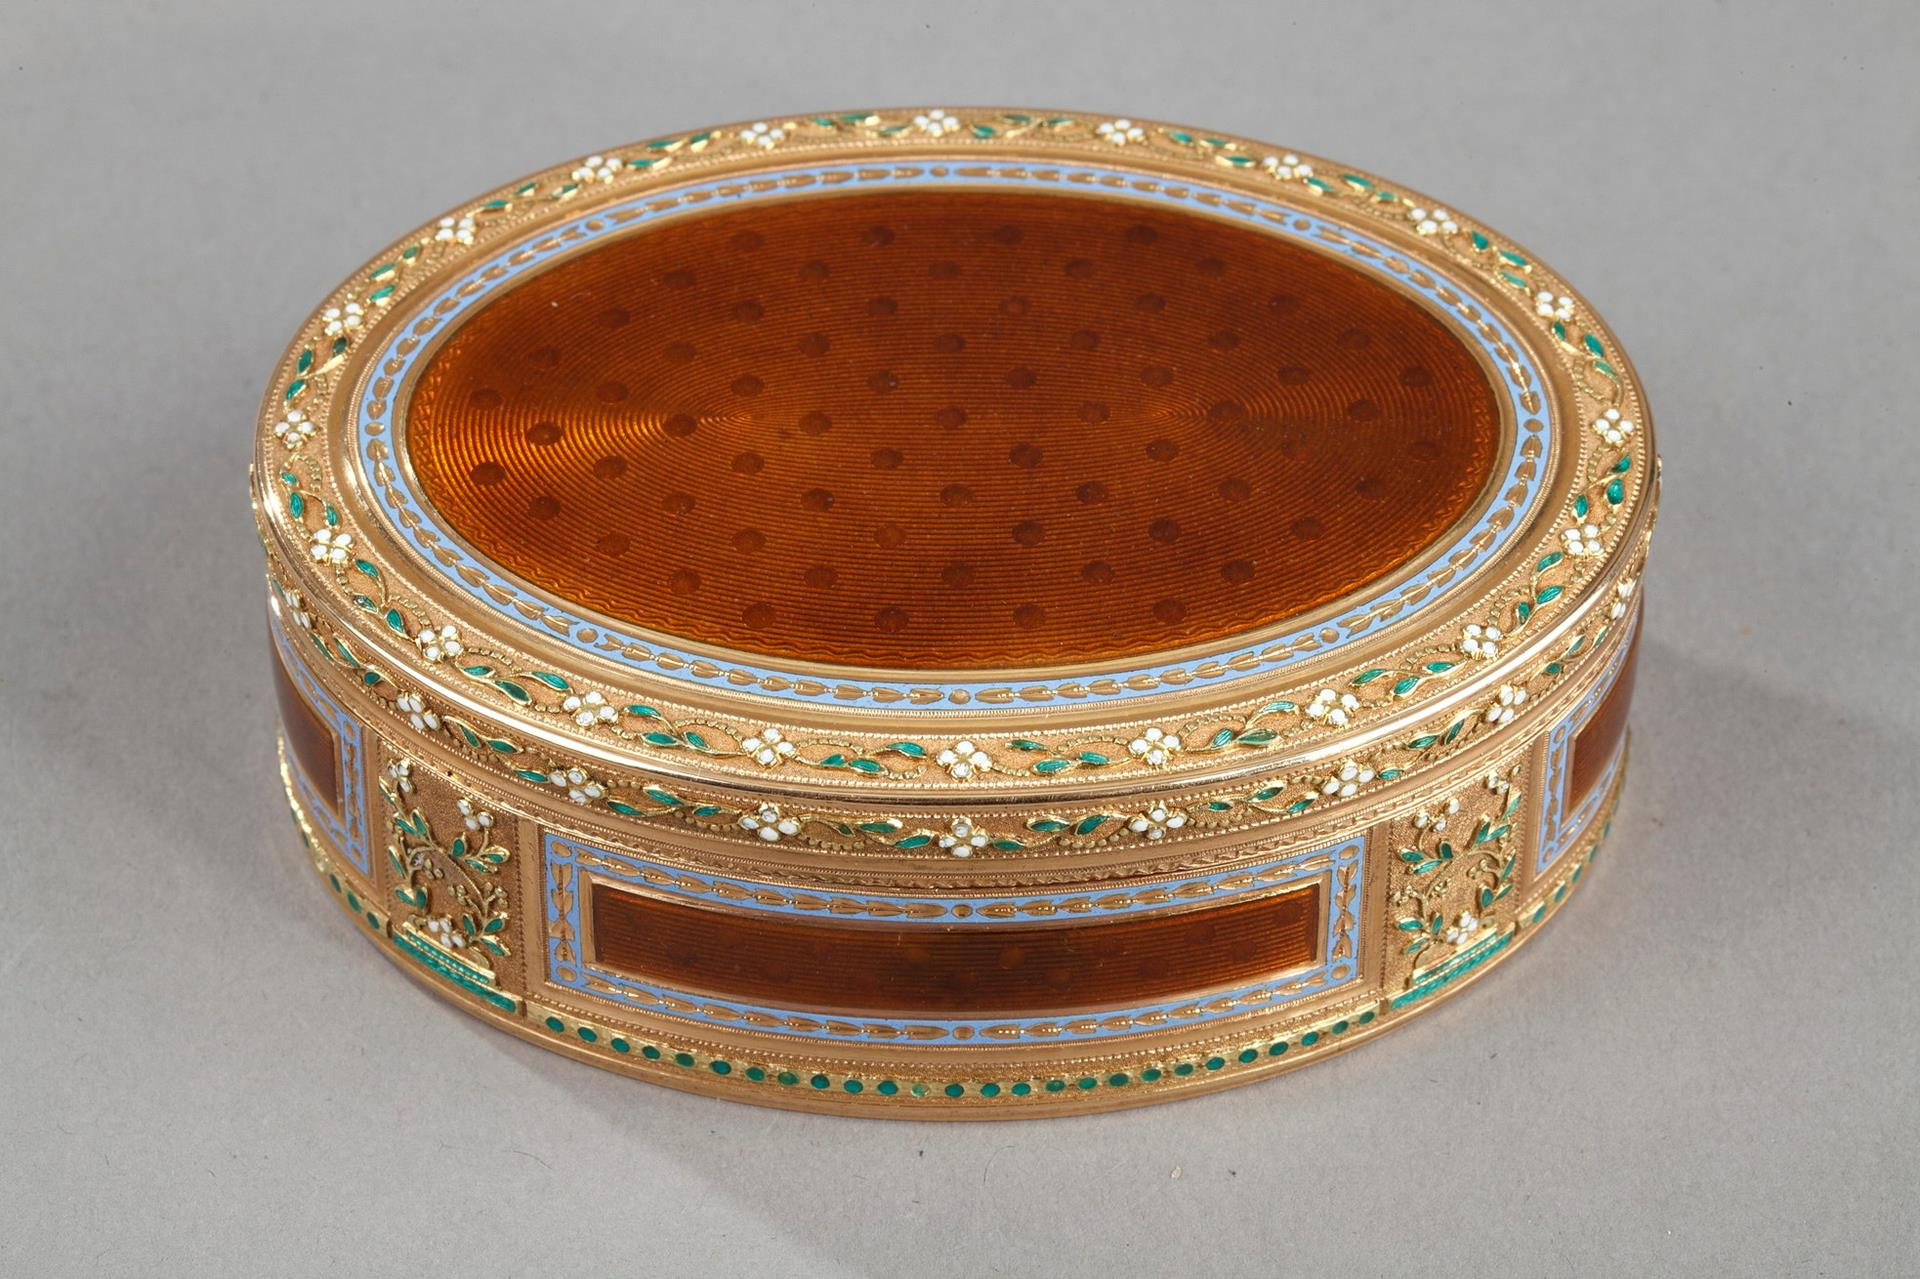 Gold and enamel snuff box.<br> 18th century.